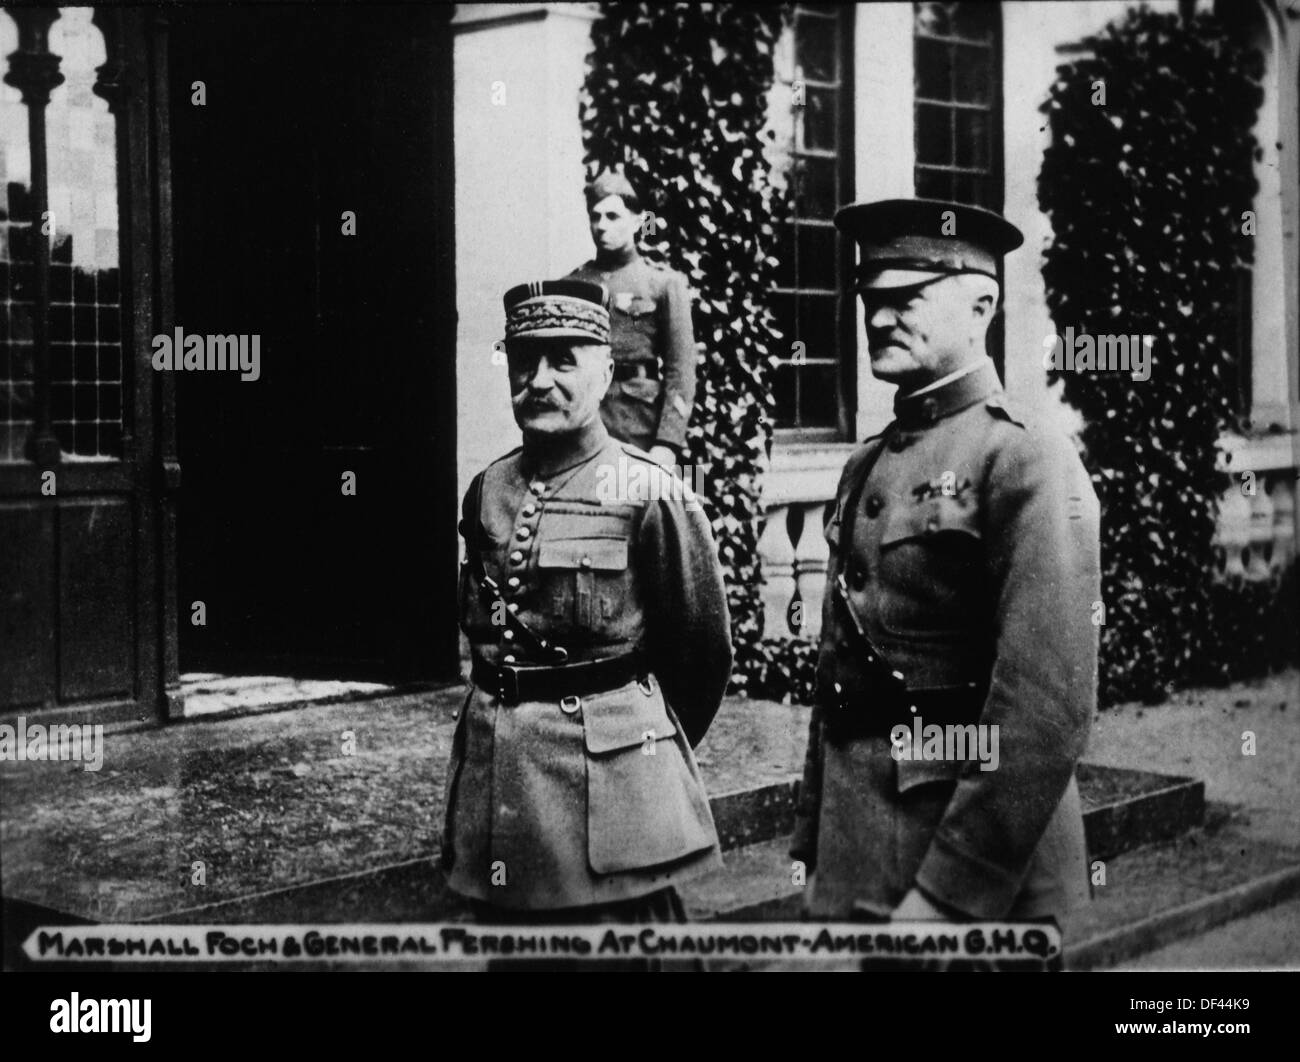 Marshall Ferdinand Foch with General John Pershing, Commander-in-Chief of American Expeditionary Forces, Chaumont, France, 1917 - Stock Image